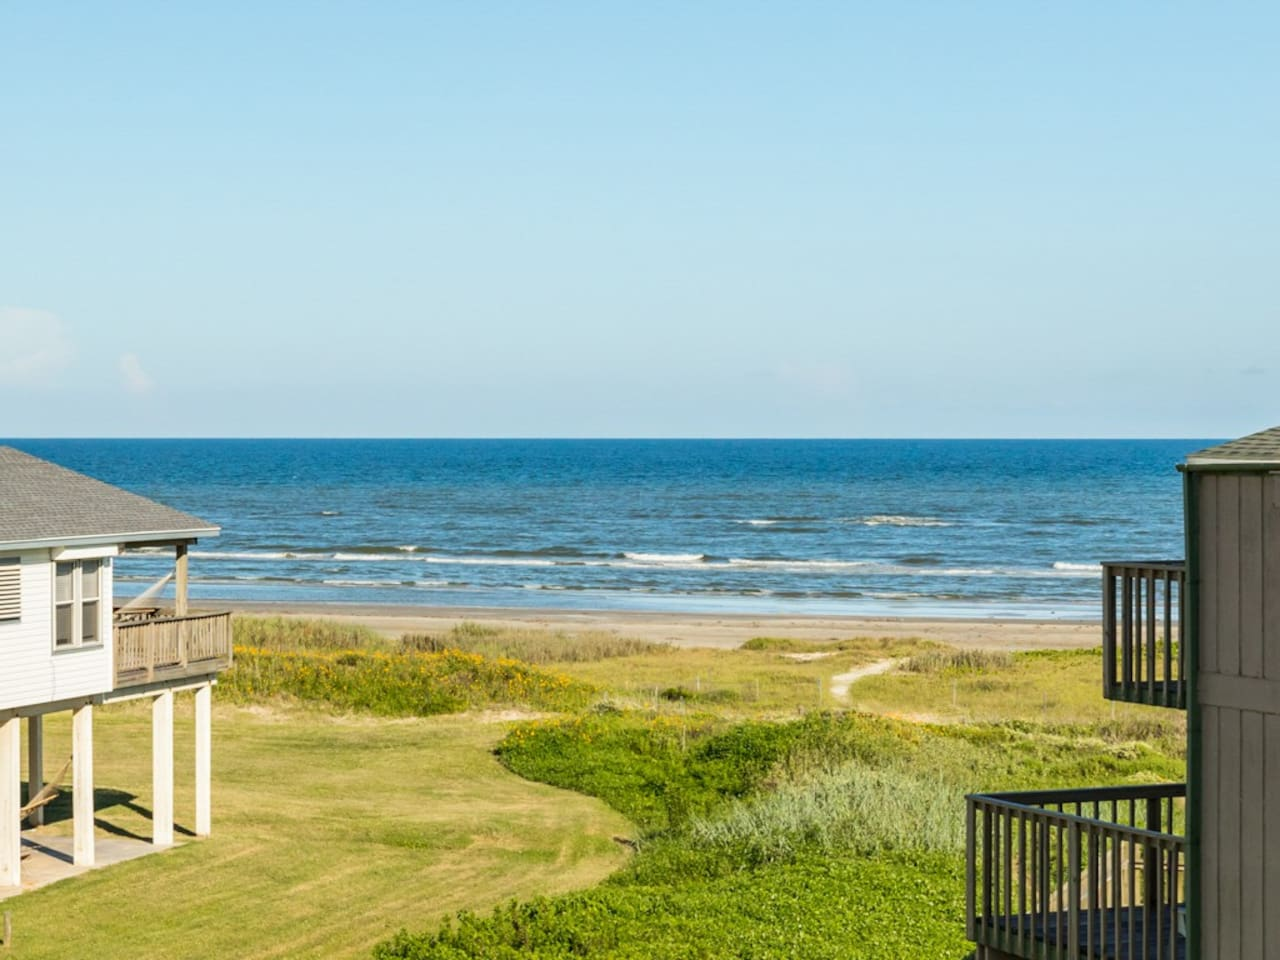 Welcome to Karankawa Beach! Your rental is professionally managed by TurnKey Vacation Rentals.